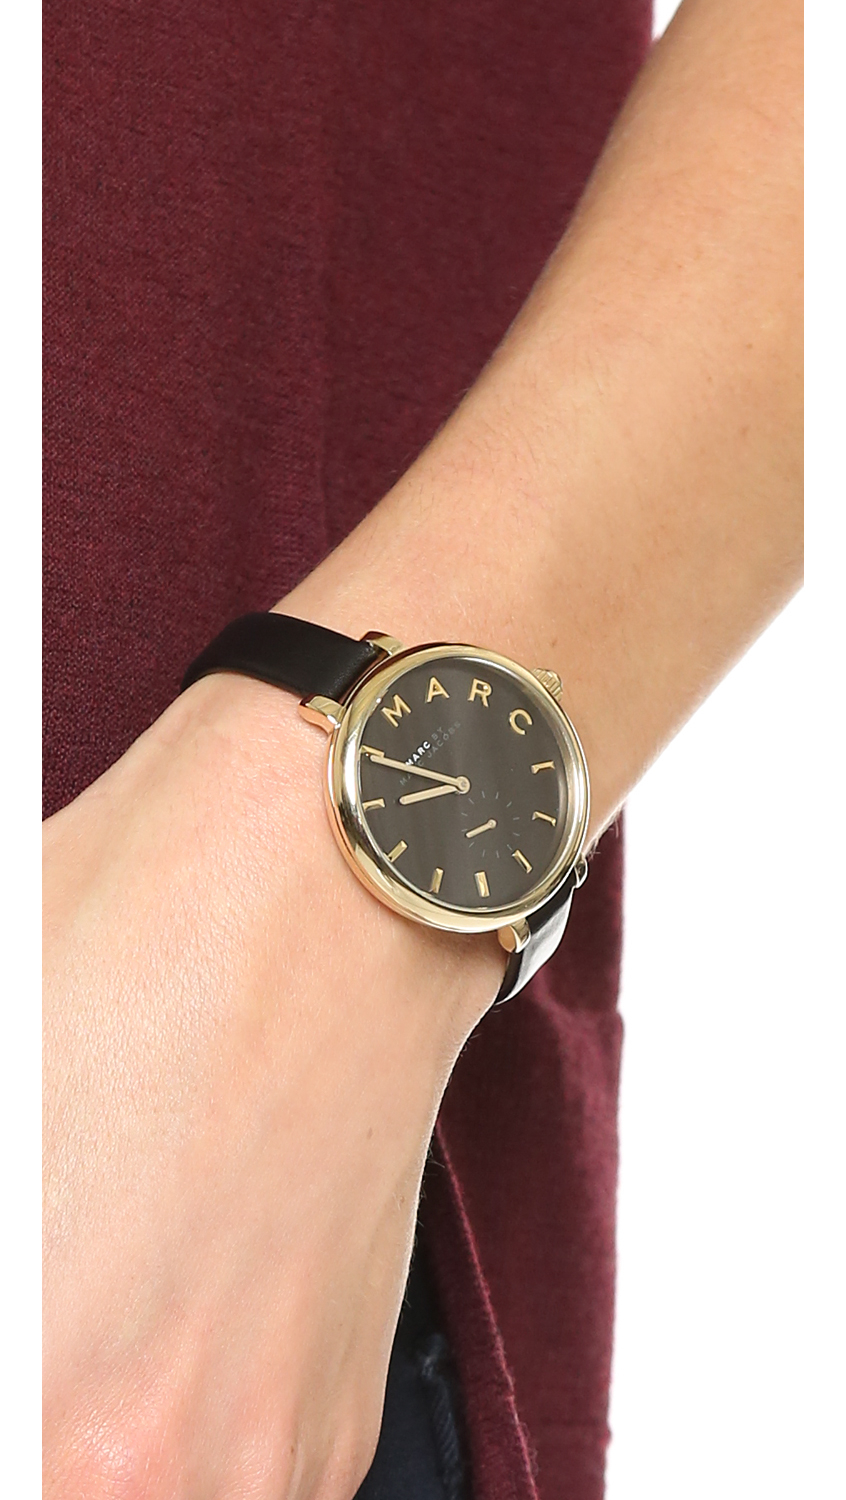 311e027160964 ... Marc by marc jacobs Sally Watch - Gold/black in Black | Lyst Marc Jacobs  ...